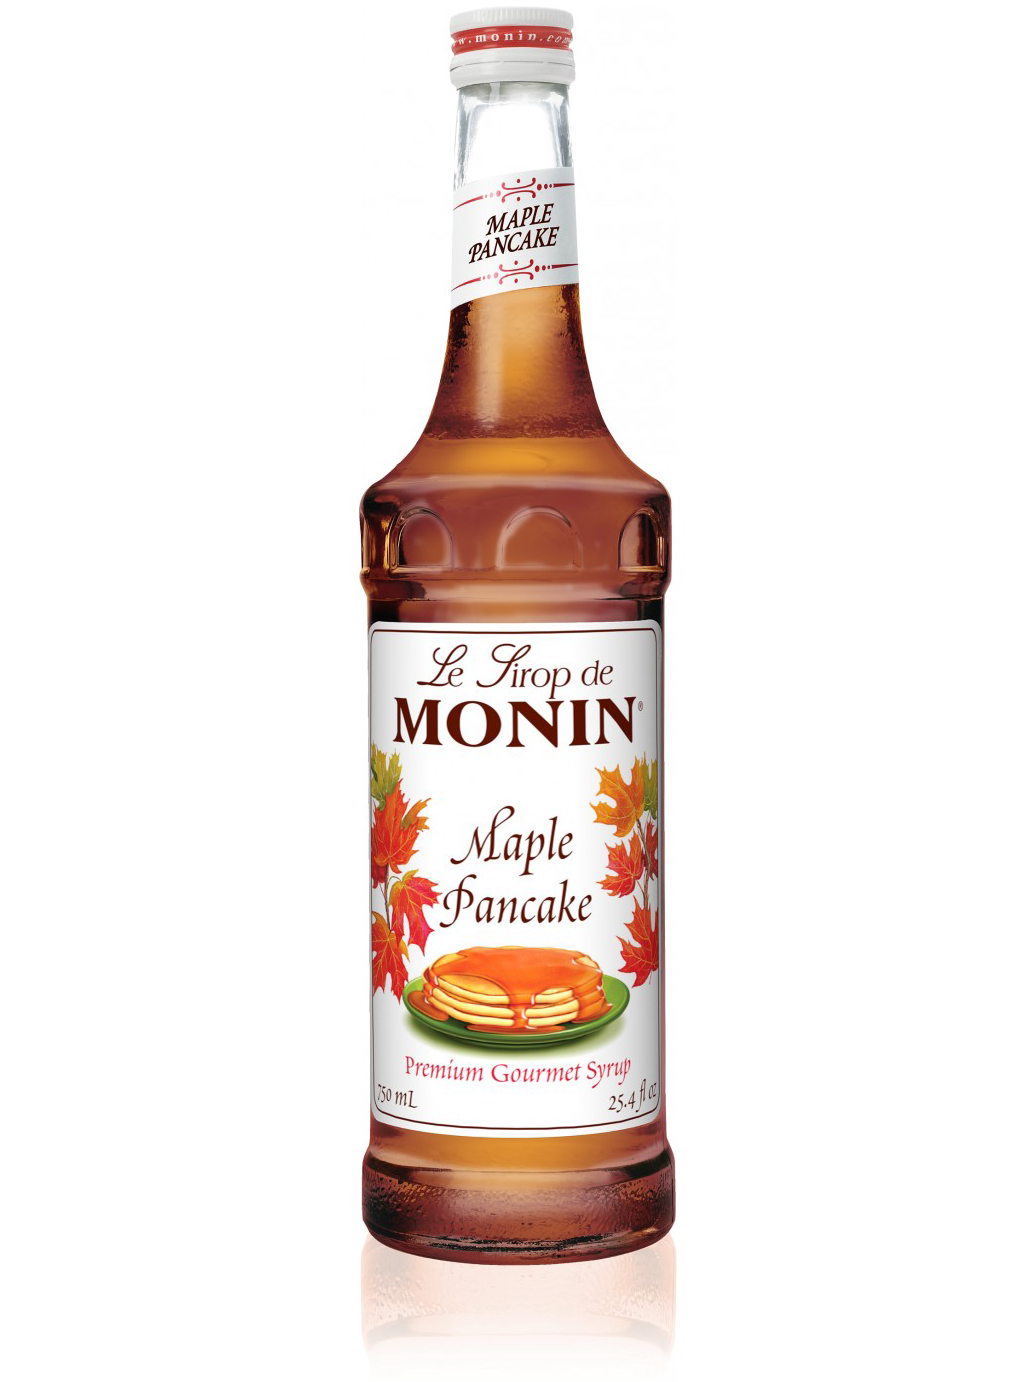 Monin Maple Pancake Syrup